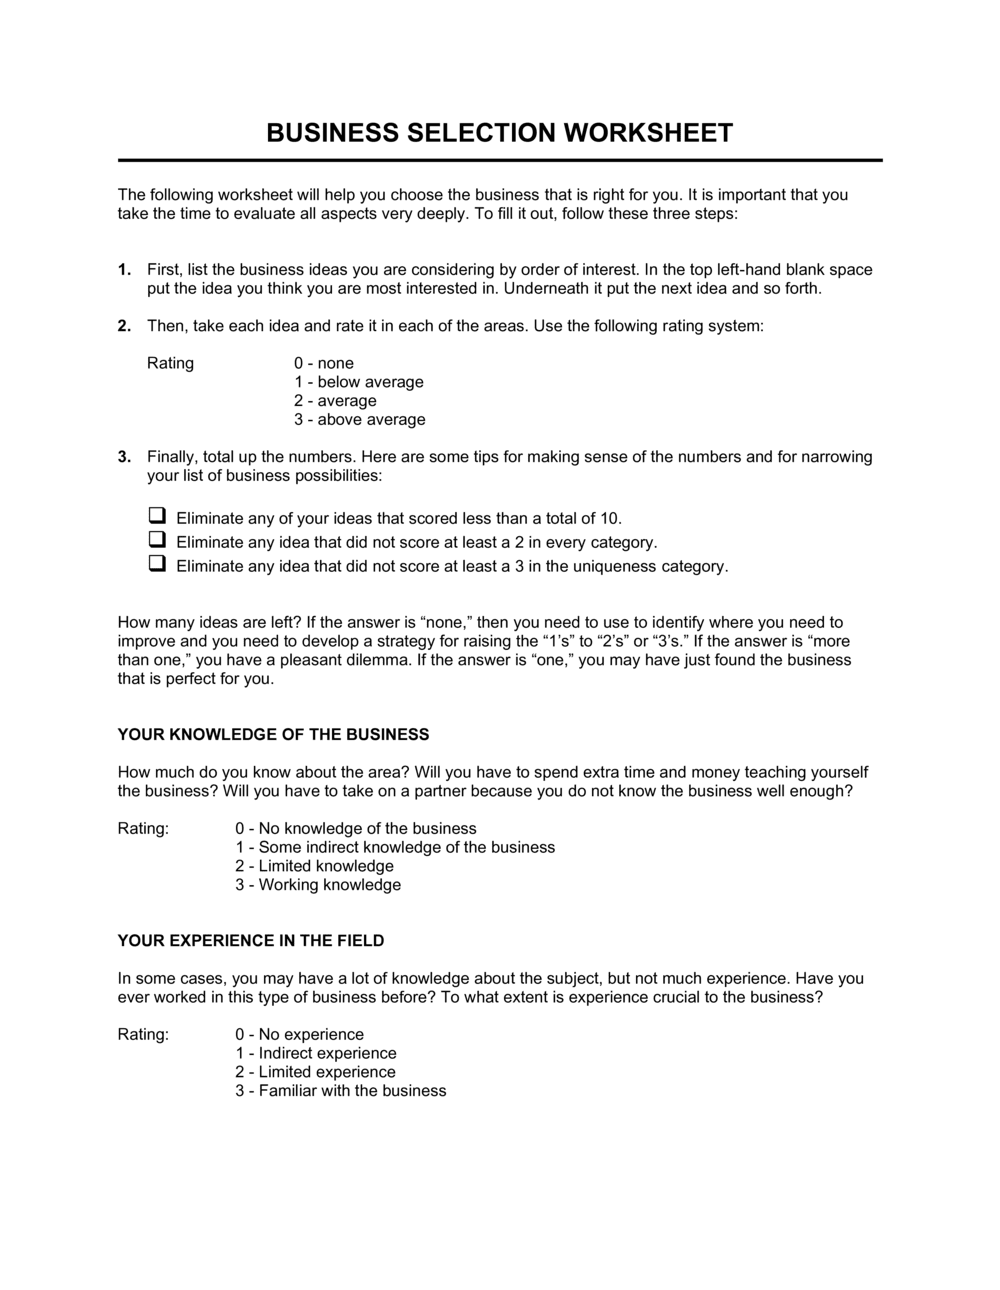 Business-in-a-Box's Worksheet Business Selection Template